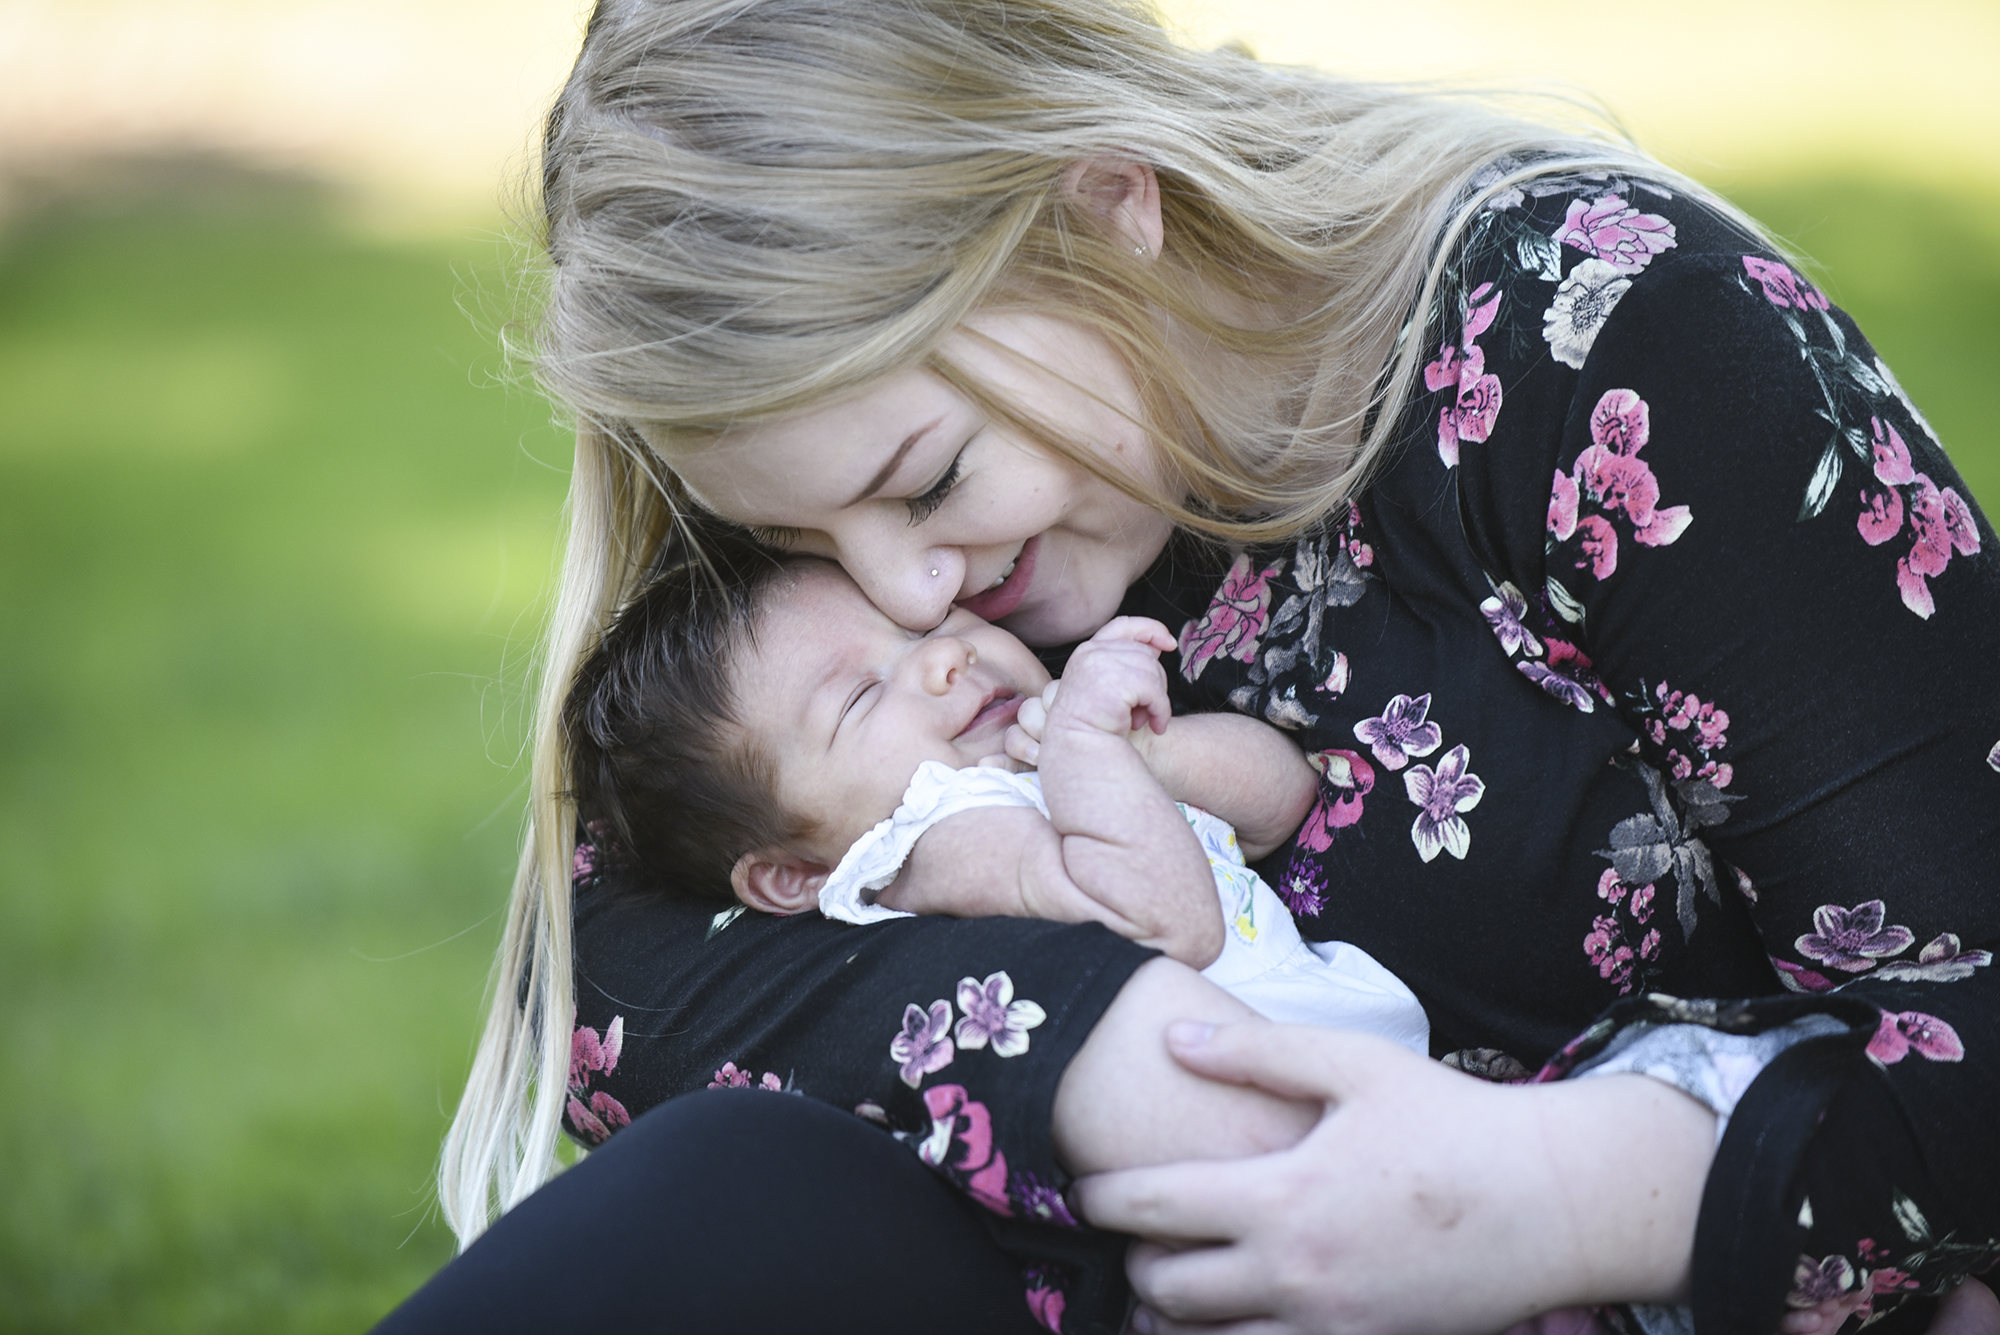 Zoe Davisson, 18, snuggles with her daughter, 7-week-old Rae Davisson at H.B. Fuller Company Park in Vancouver, Thursday September 28, 2017, during a visit with public health nurse, Joan Riemer. PeaceHealth is providing about $900,000 over three years to fund the public health program that sends nurses to the homes of new mothers. (Ariane Kunze/The Columbian)